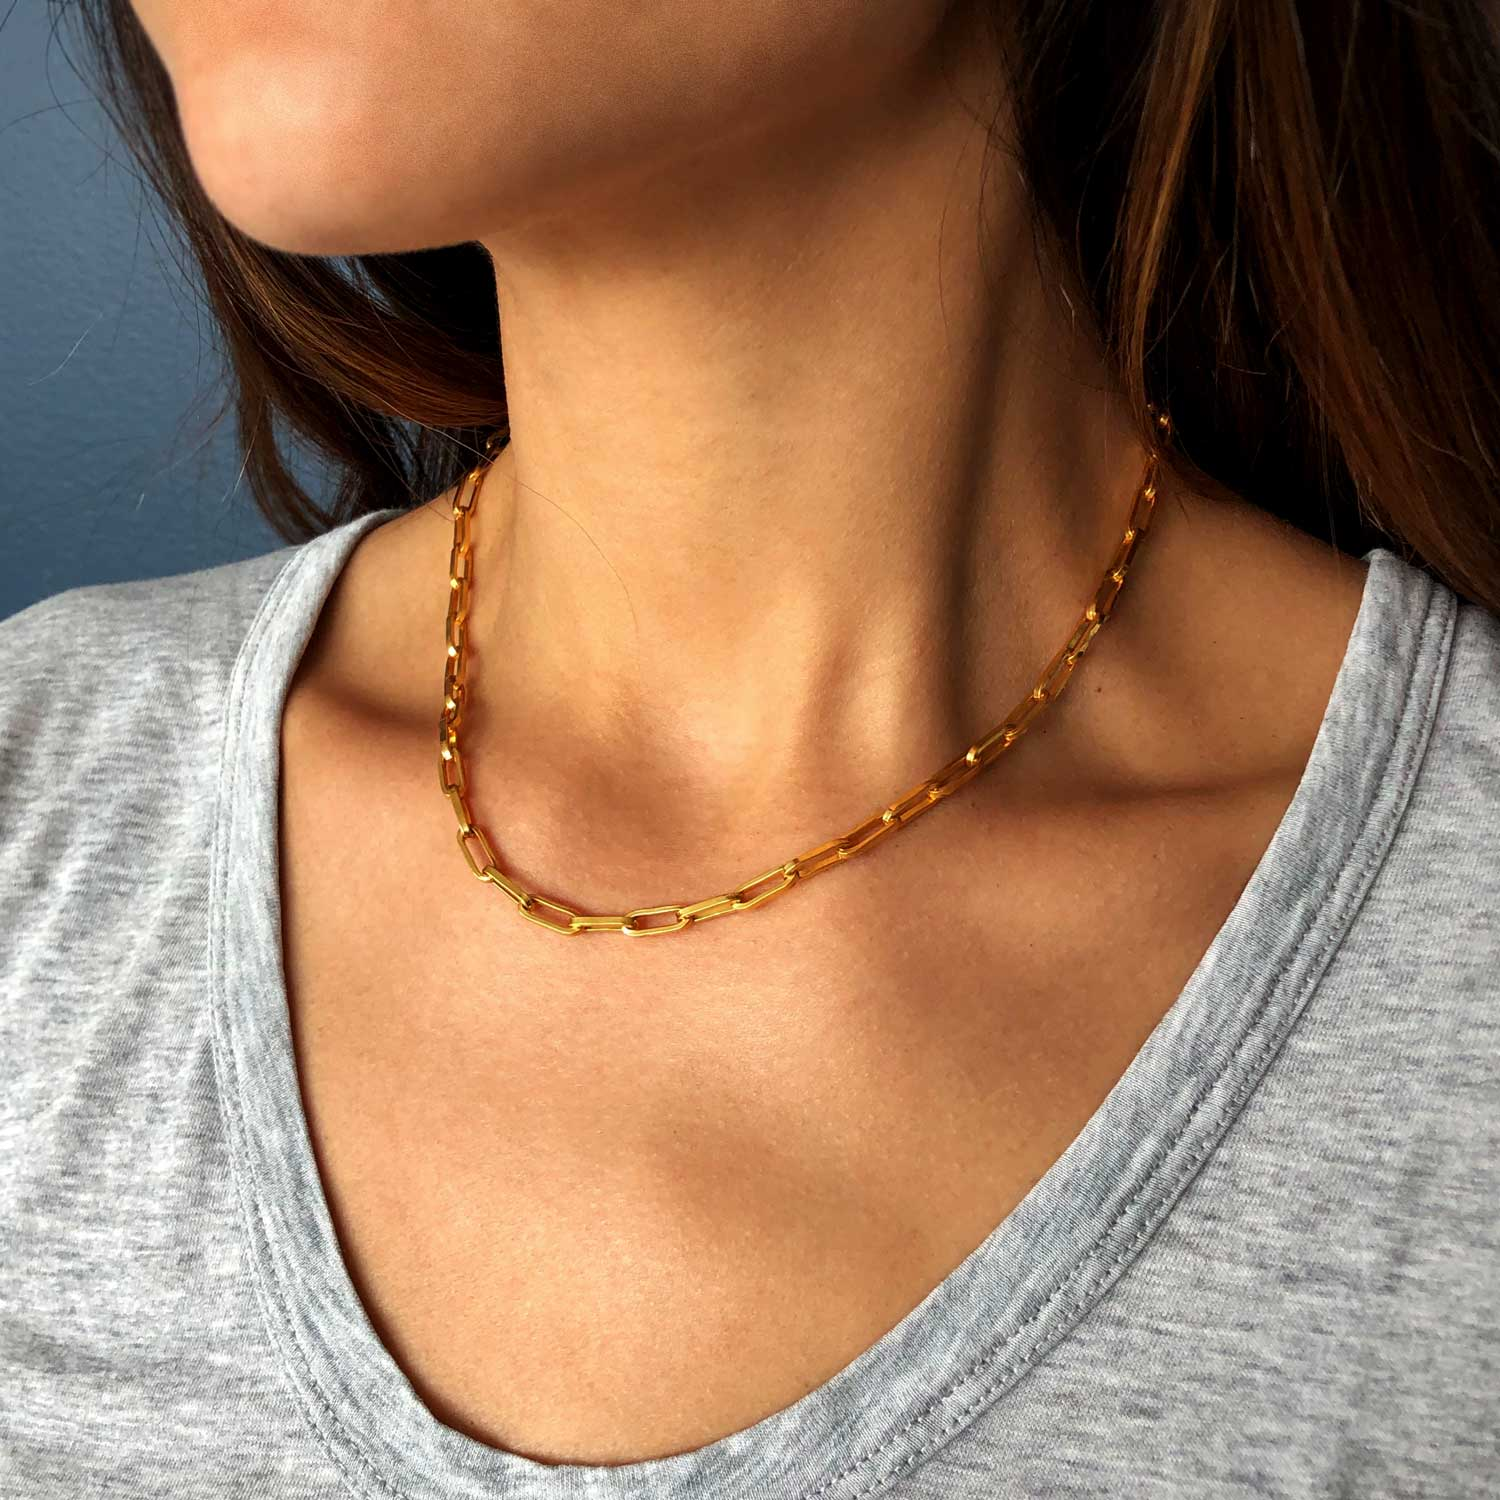 Link chain bold heavy sterling silver 925 gold vermeil plated ana buendia jewelry